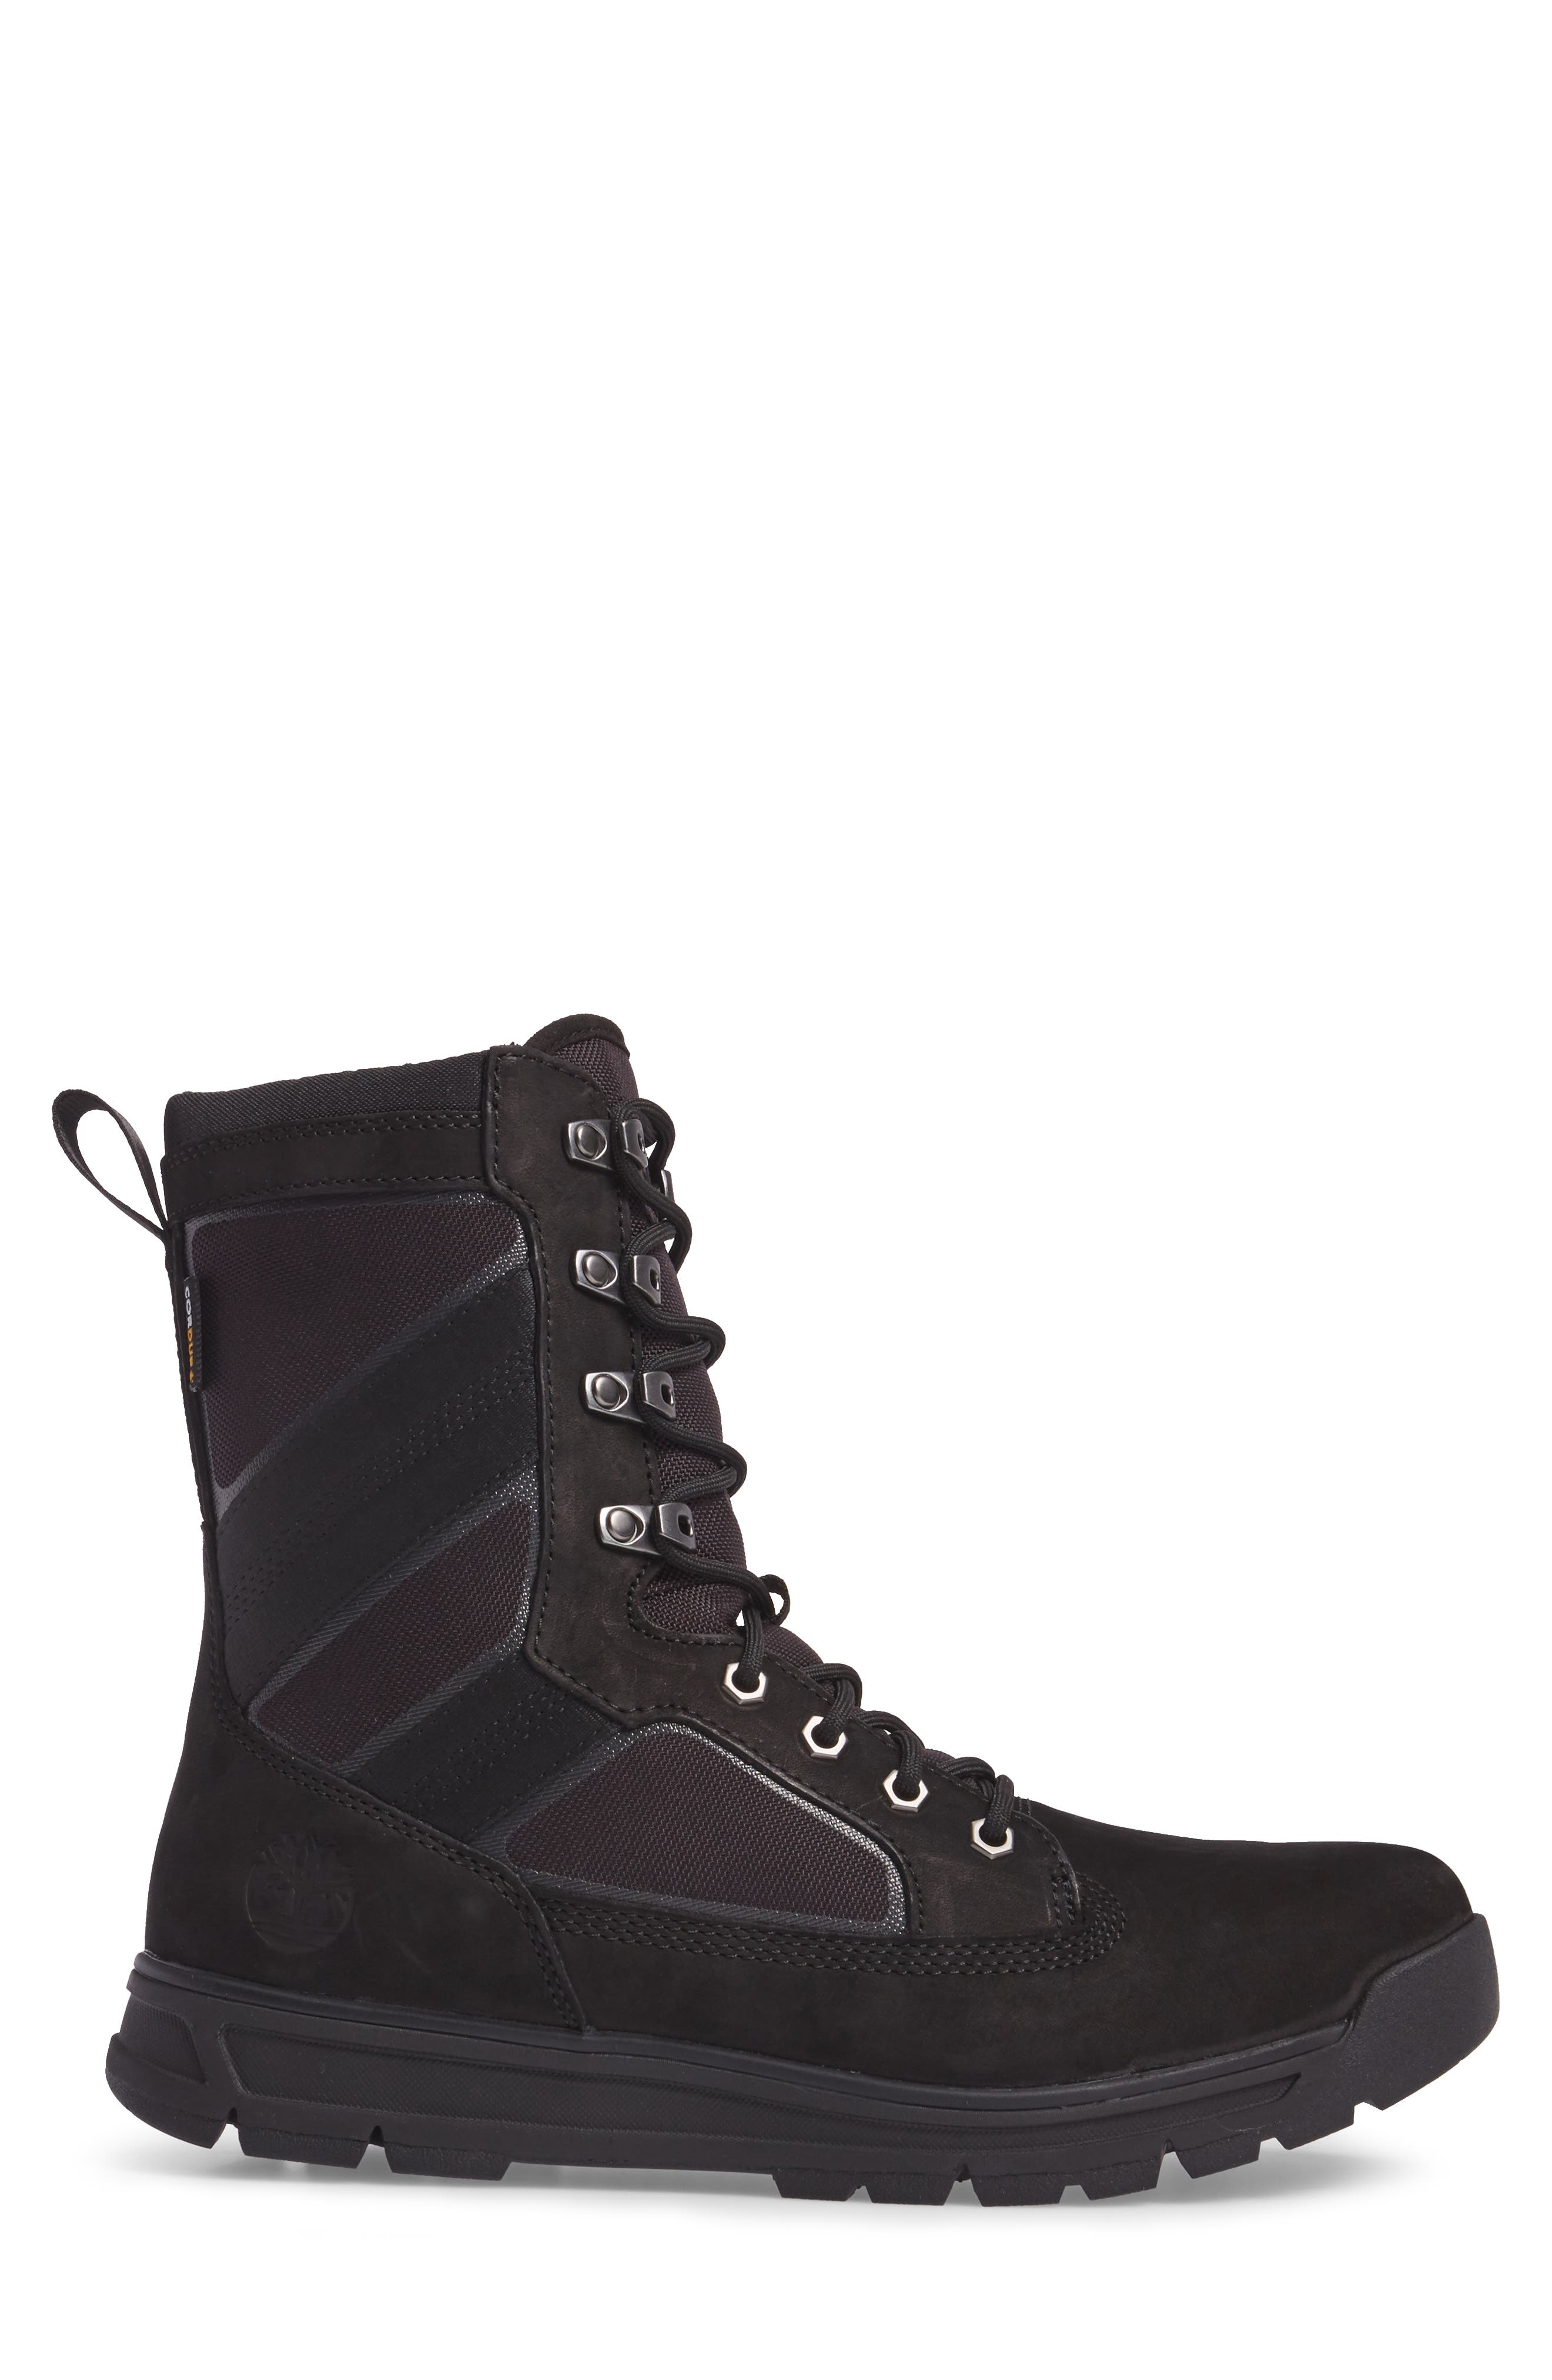 Field Guide Boot,                             Alternate thumbnail 3, color,                             Black Leather